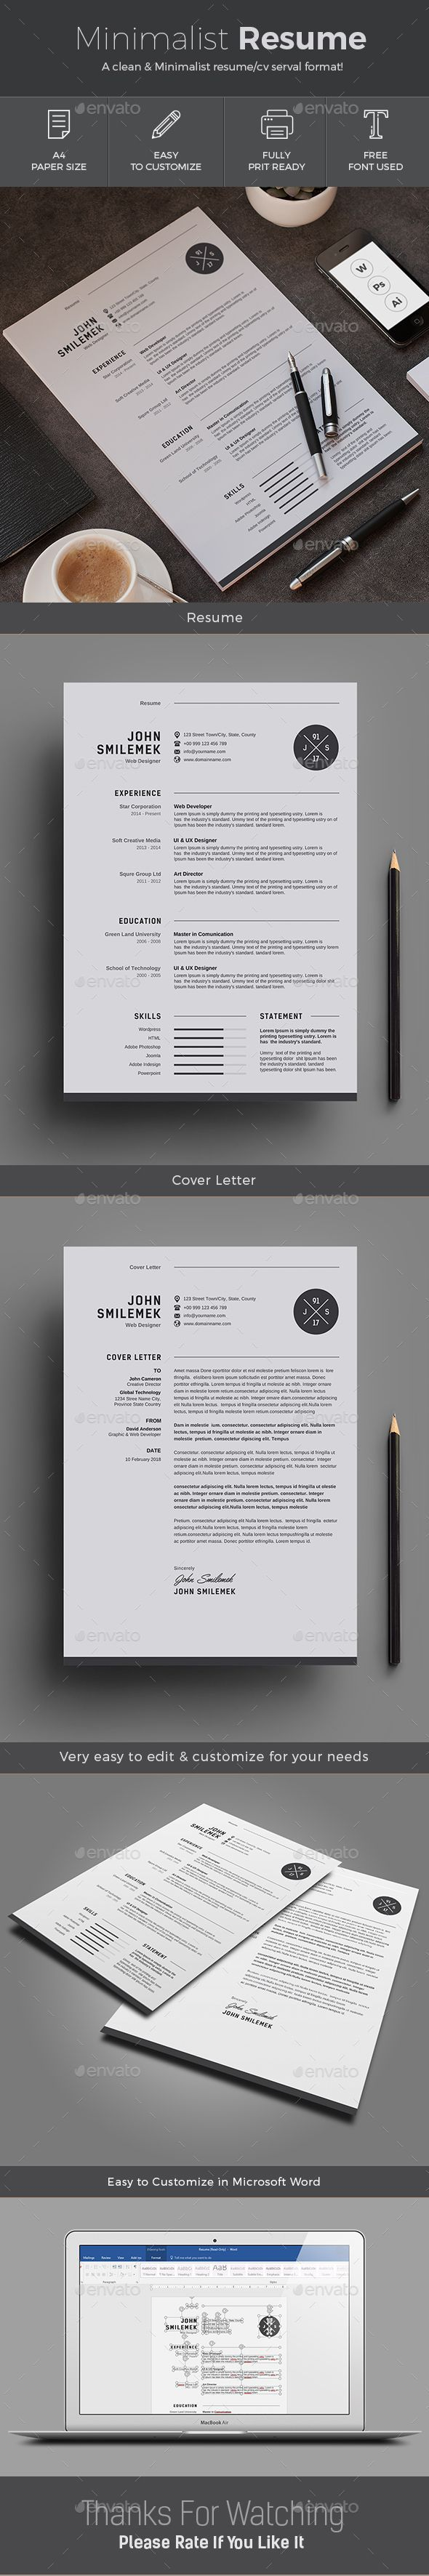 customer service cover letter entry level%0A  Resume  Resumes Stationery Download here  https   graphicriver net